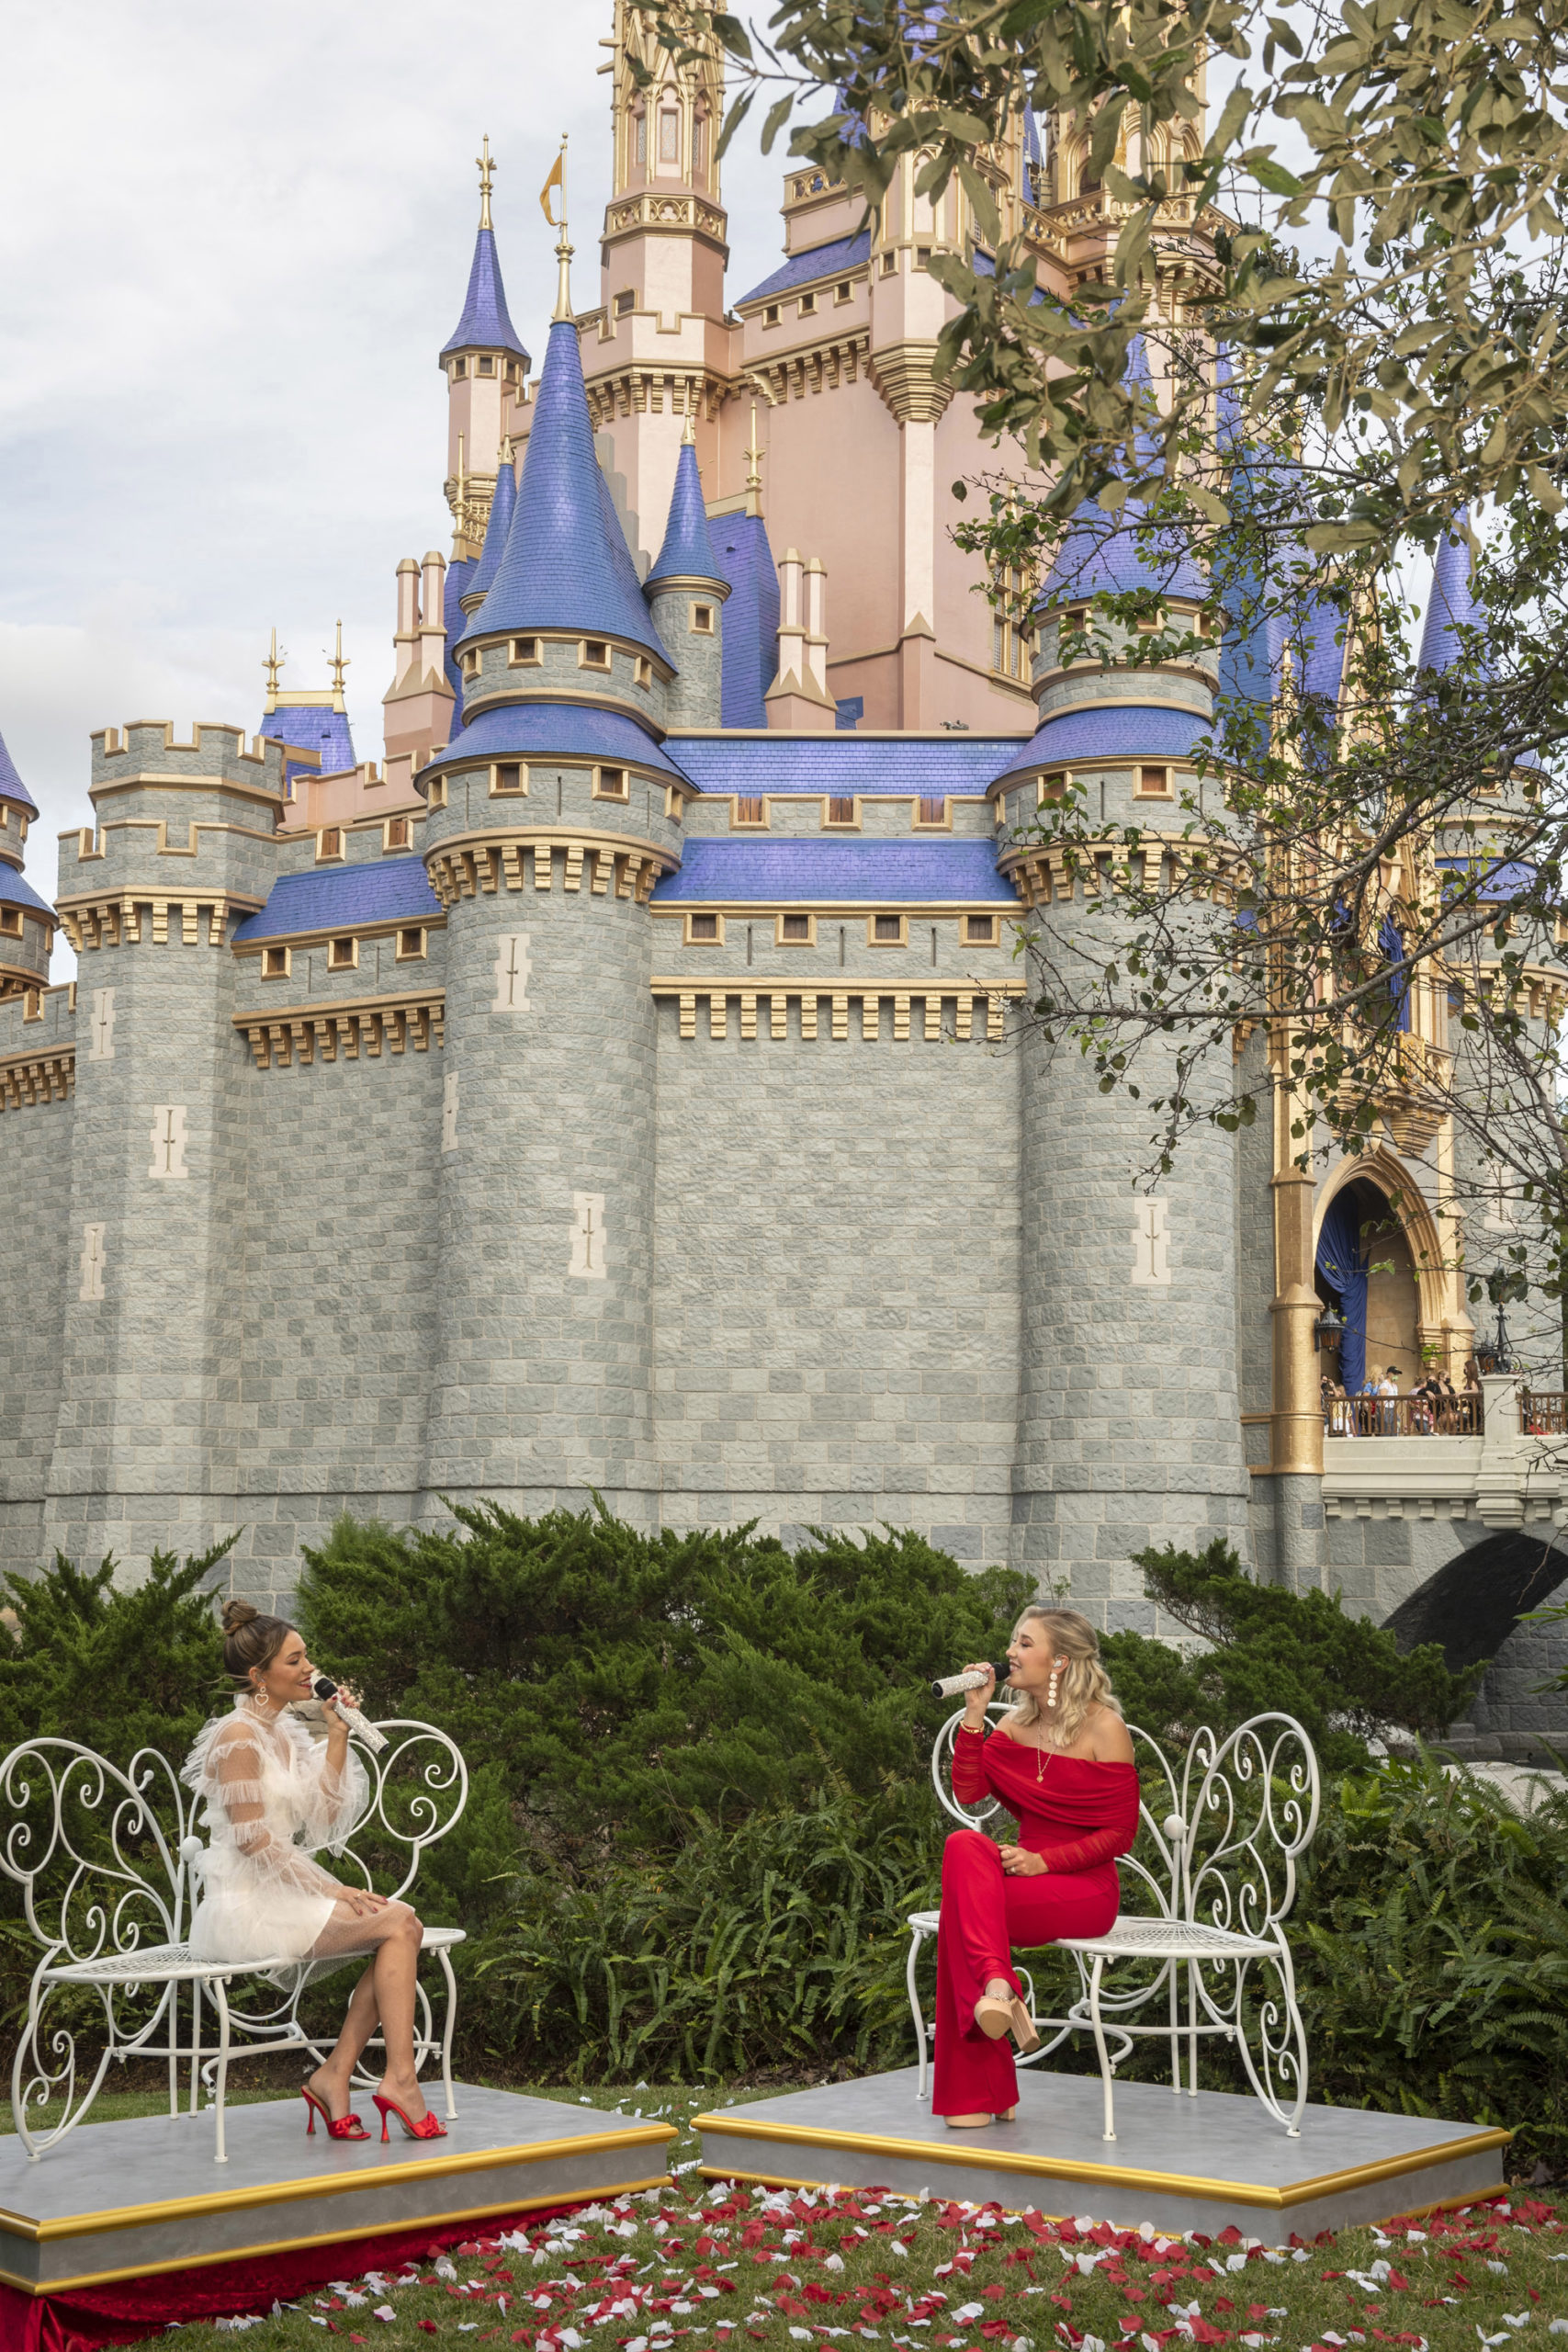 Country duo Maddie & Tae perform in front of Cinderella Castle at Magic Kingdom